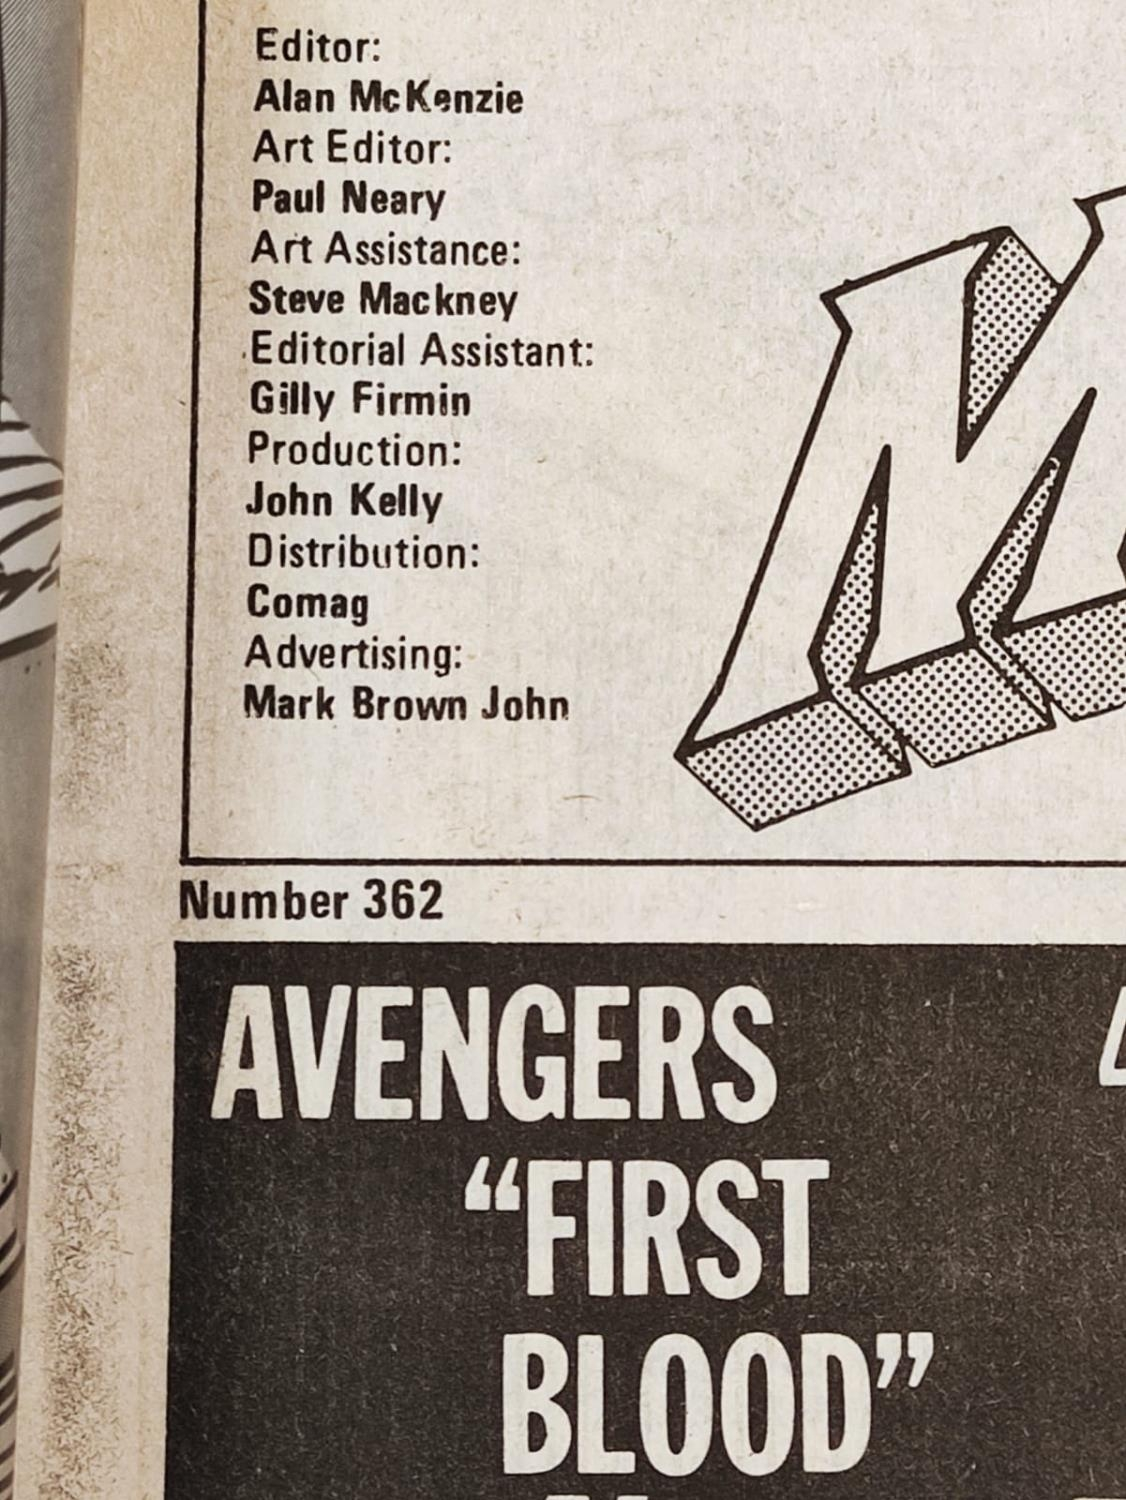 20 editions of mixed Vintage Marvel Comics. - Image 17 of 56